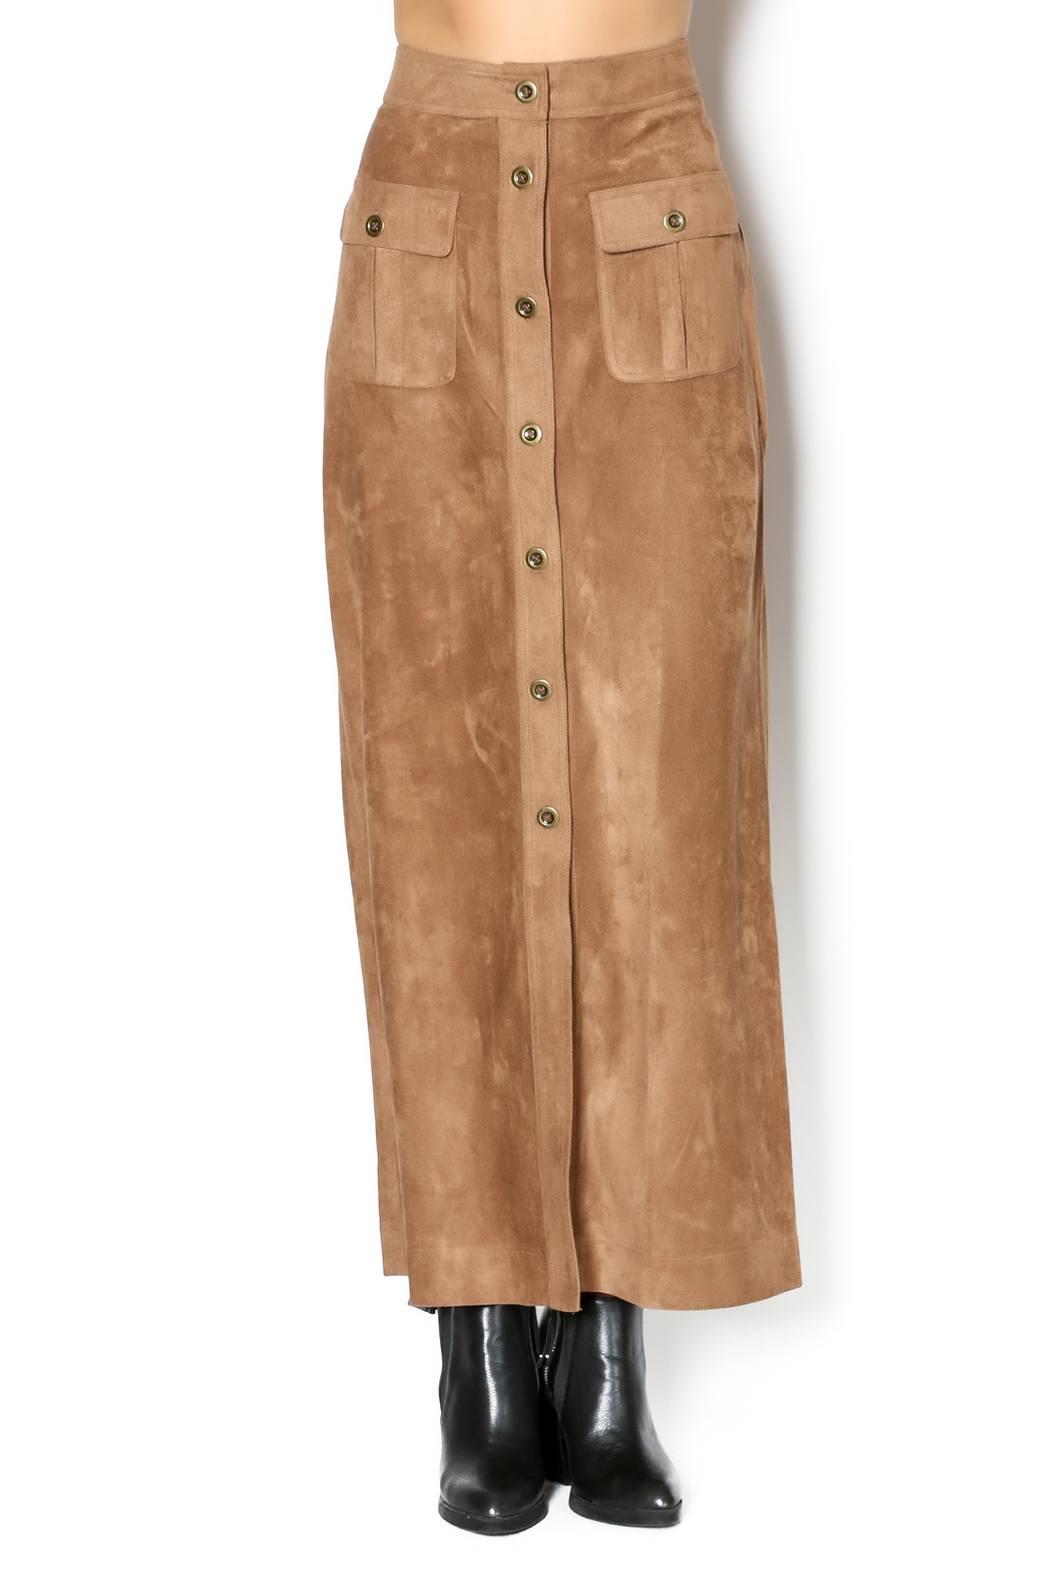 Babel Fair Suede Look Maxi Skirt from Williamsburg by Babel Fair ...